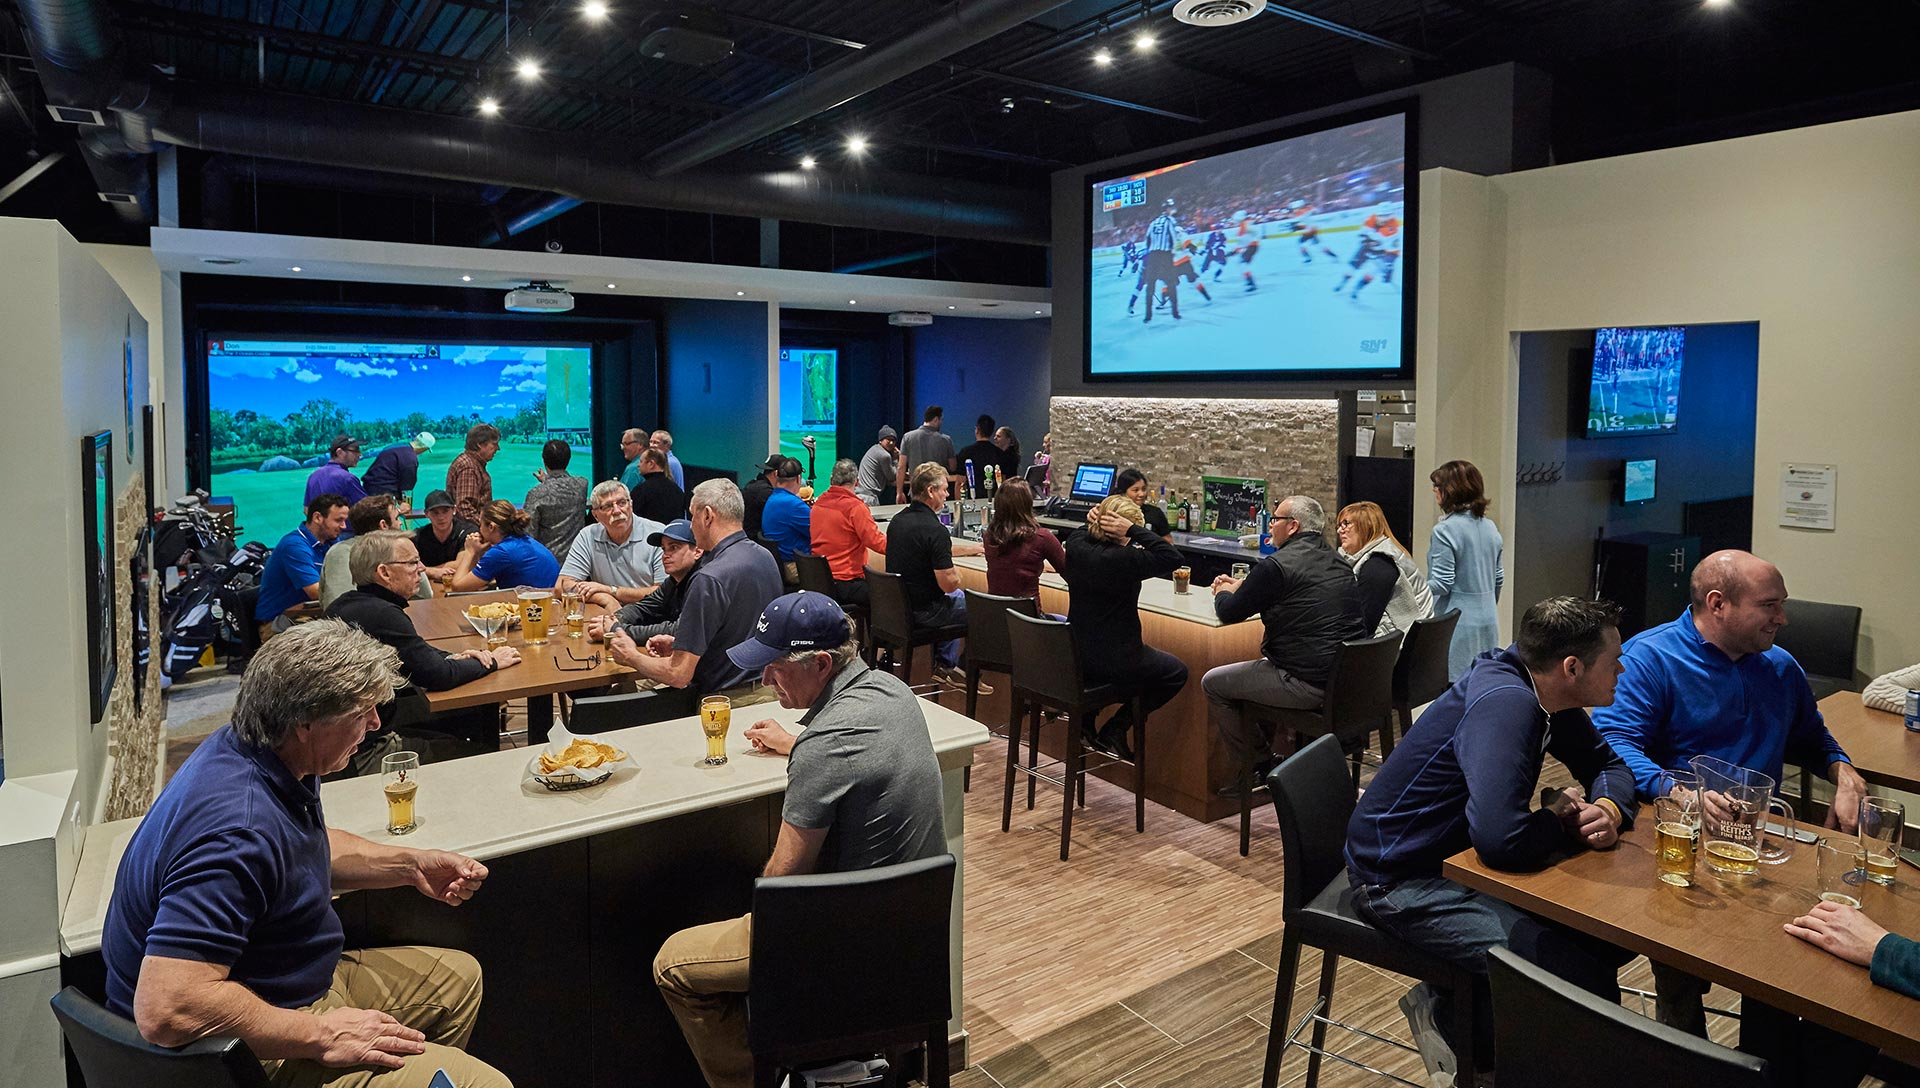 Indoor Golf Club and Sports Bar showing big screen TV and golf simulators.